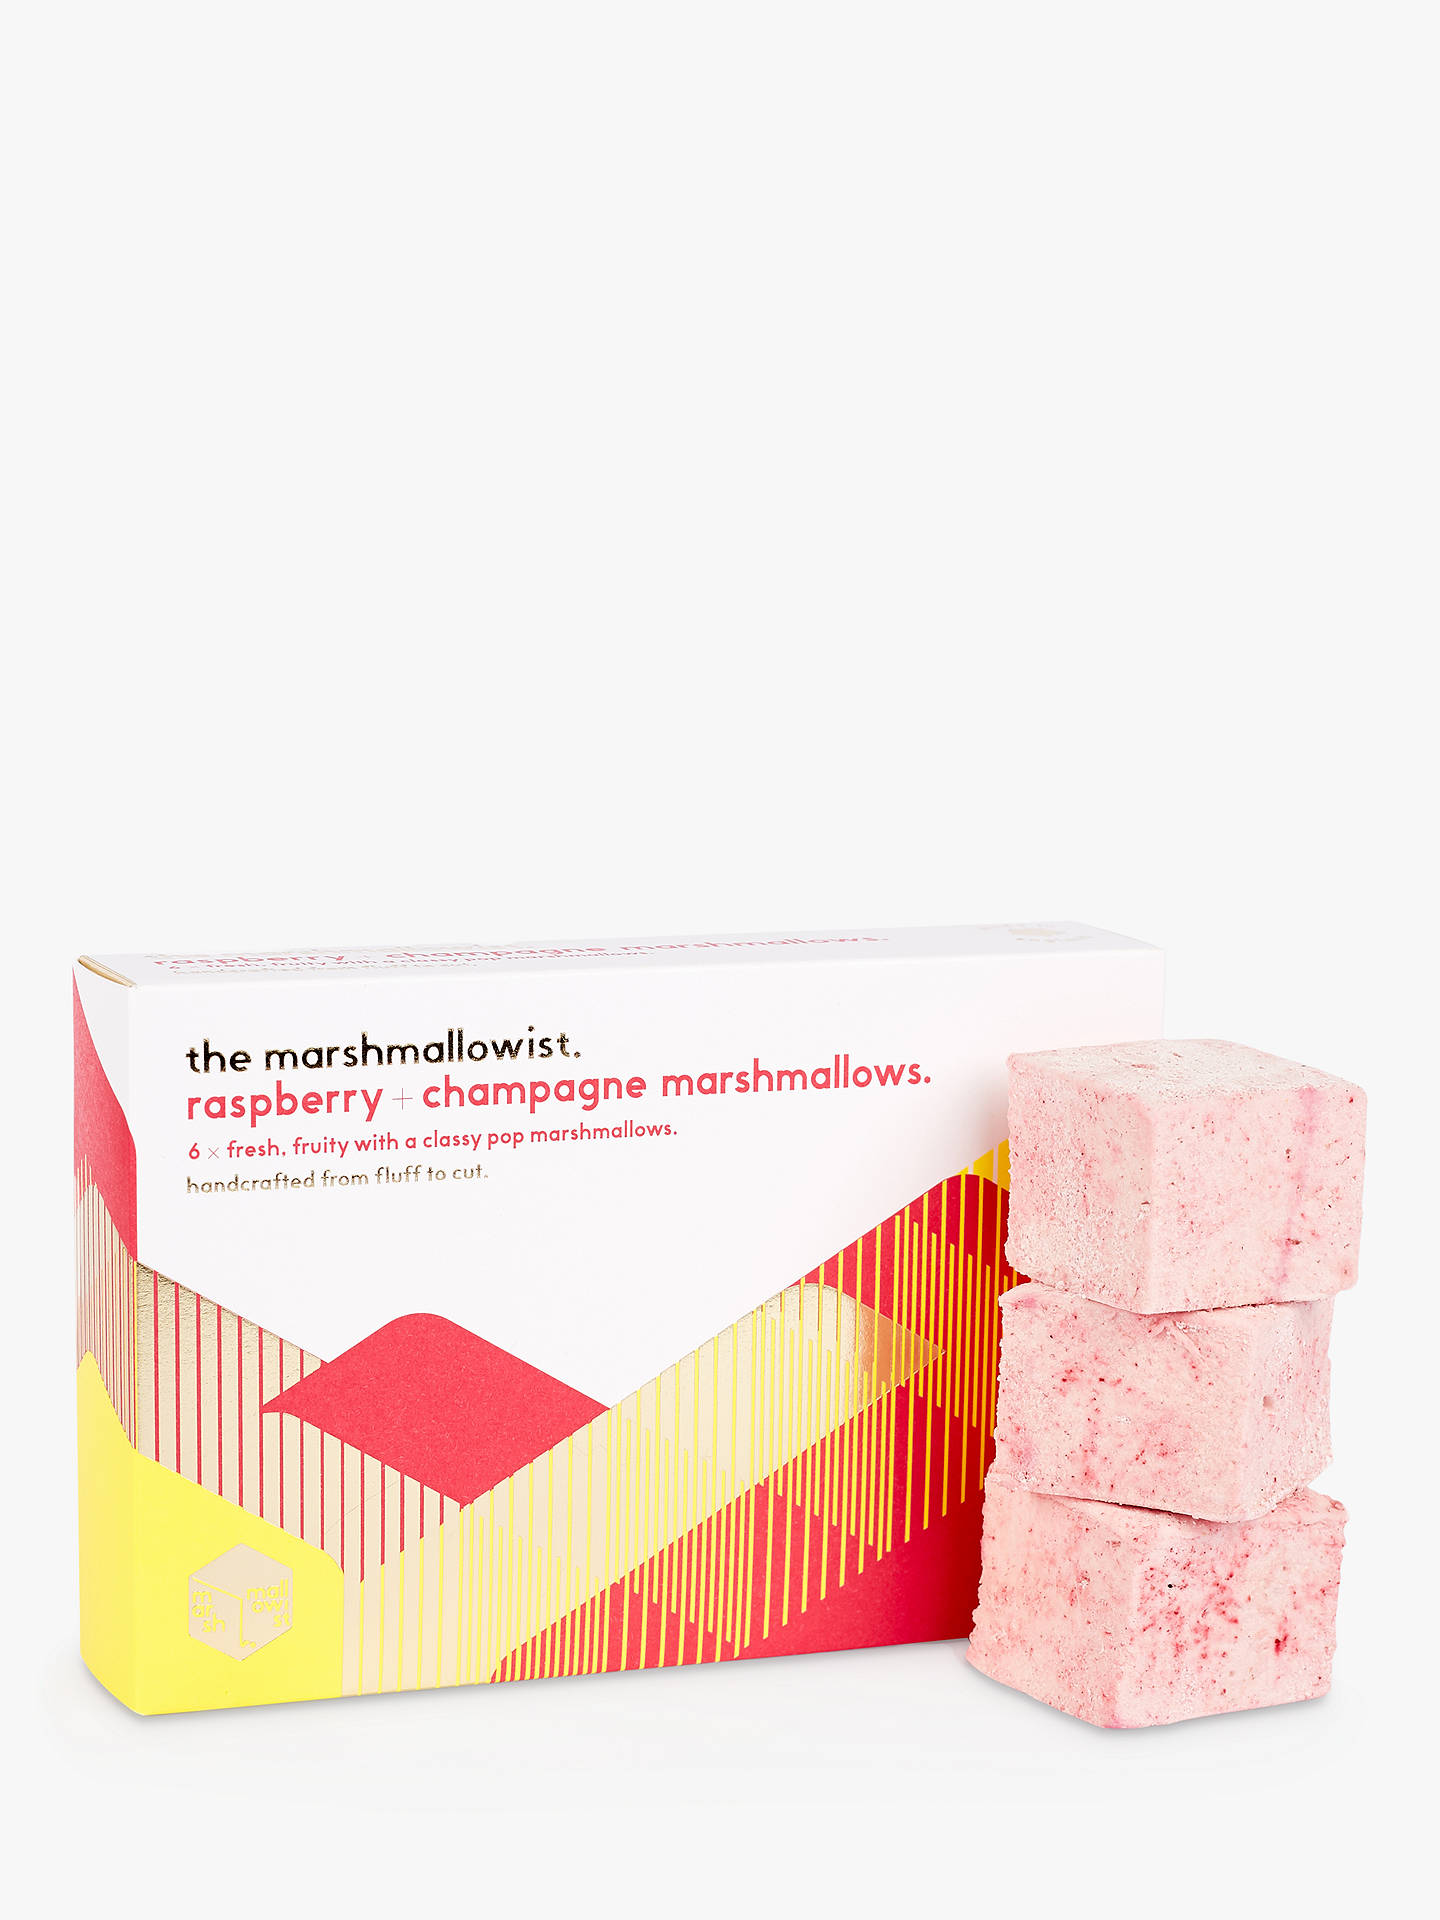 BuyThe Marshmallowist Raspberry & Champagne Marshmallows, 120g Online at johnlewis.com